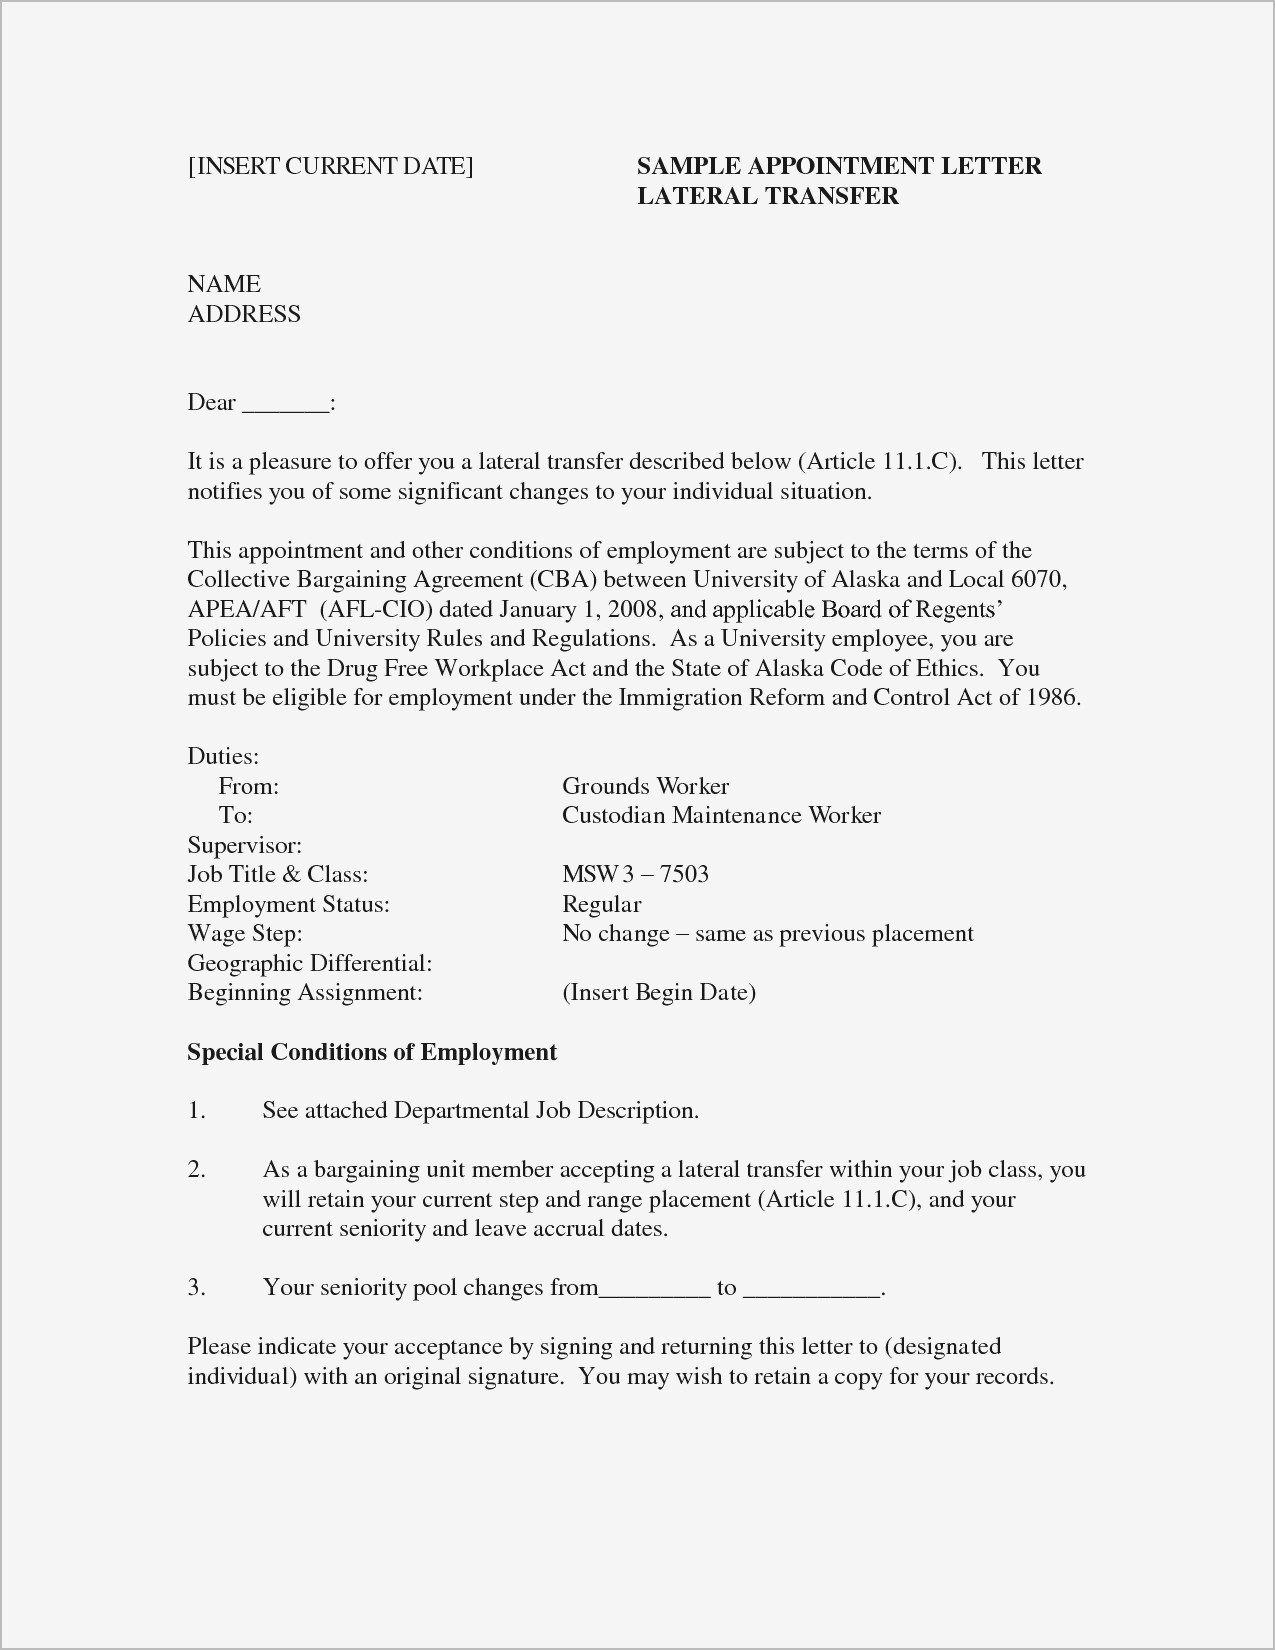 executive offer letter template example-opt offer letter template free job resume template cover letter template word 2014 fresh relocation cover letters od 15l 4-n